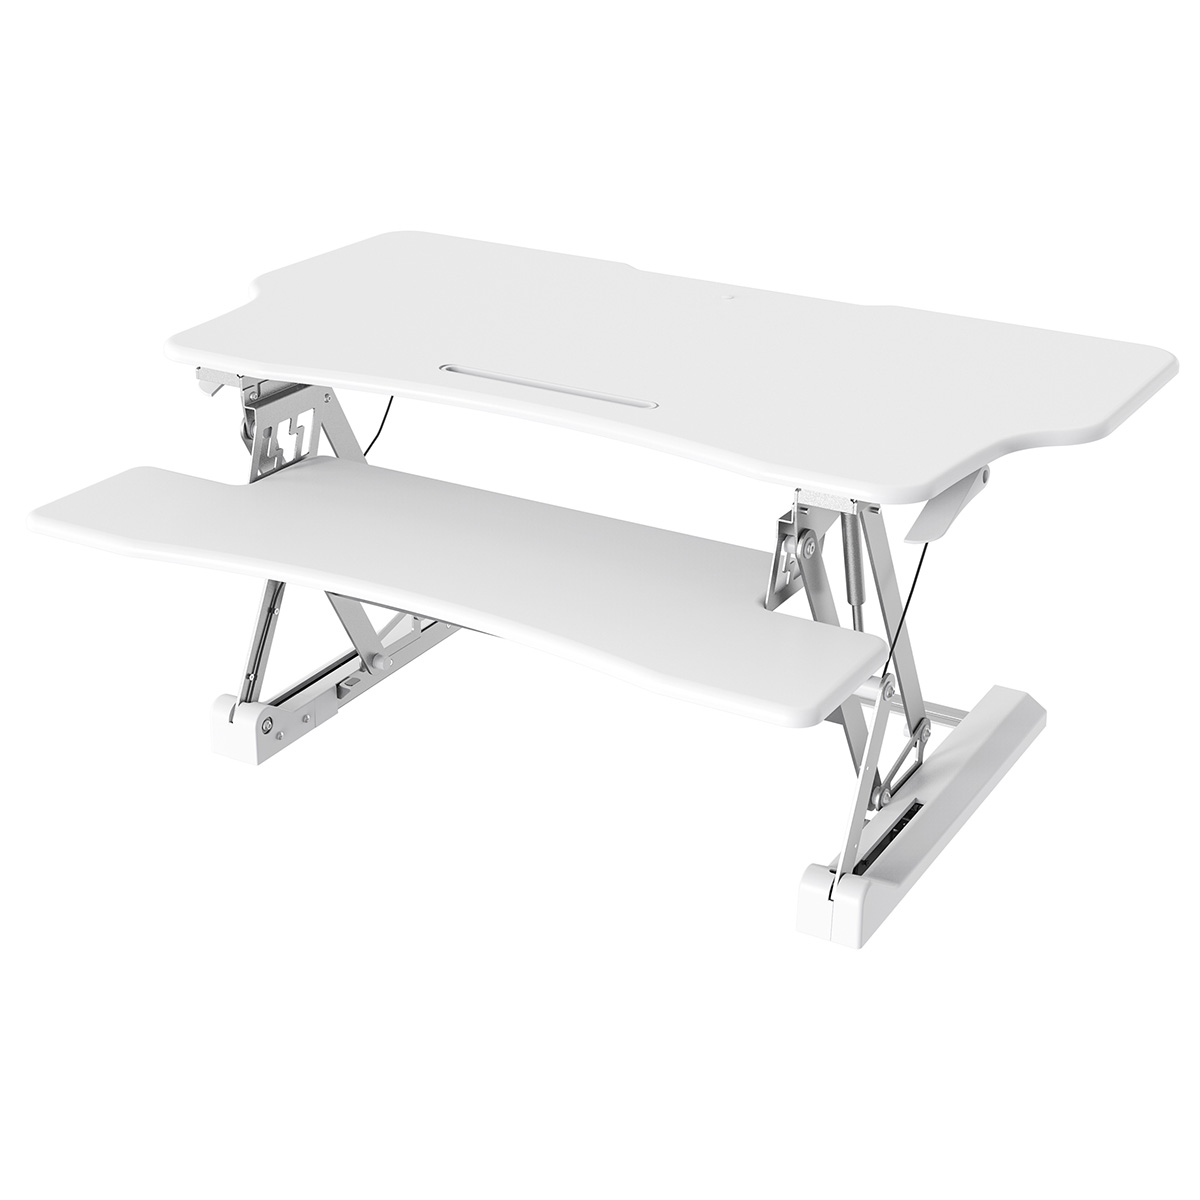 STS-DR46ii 46″ Sit-to-Stand Standing Desk Riser (White)